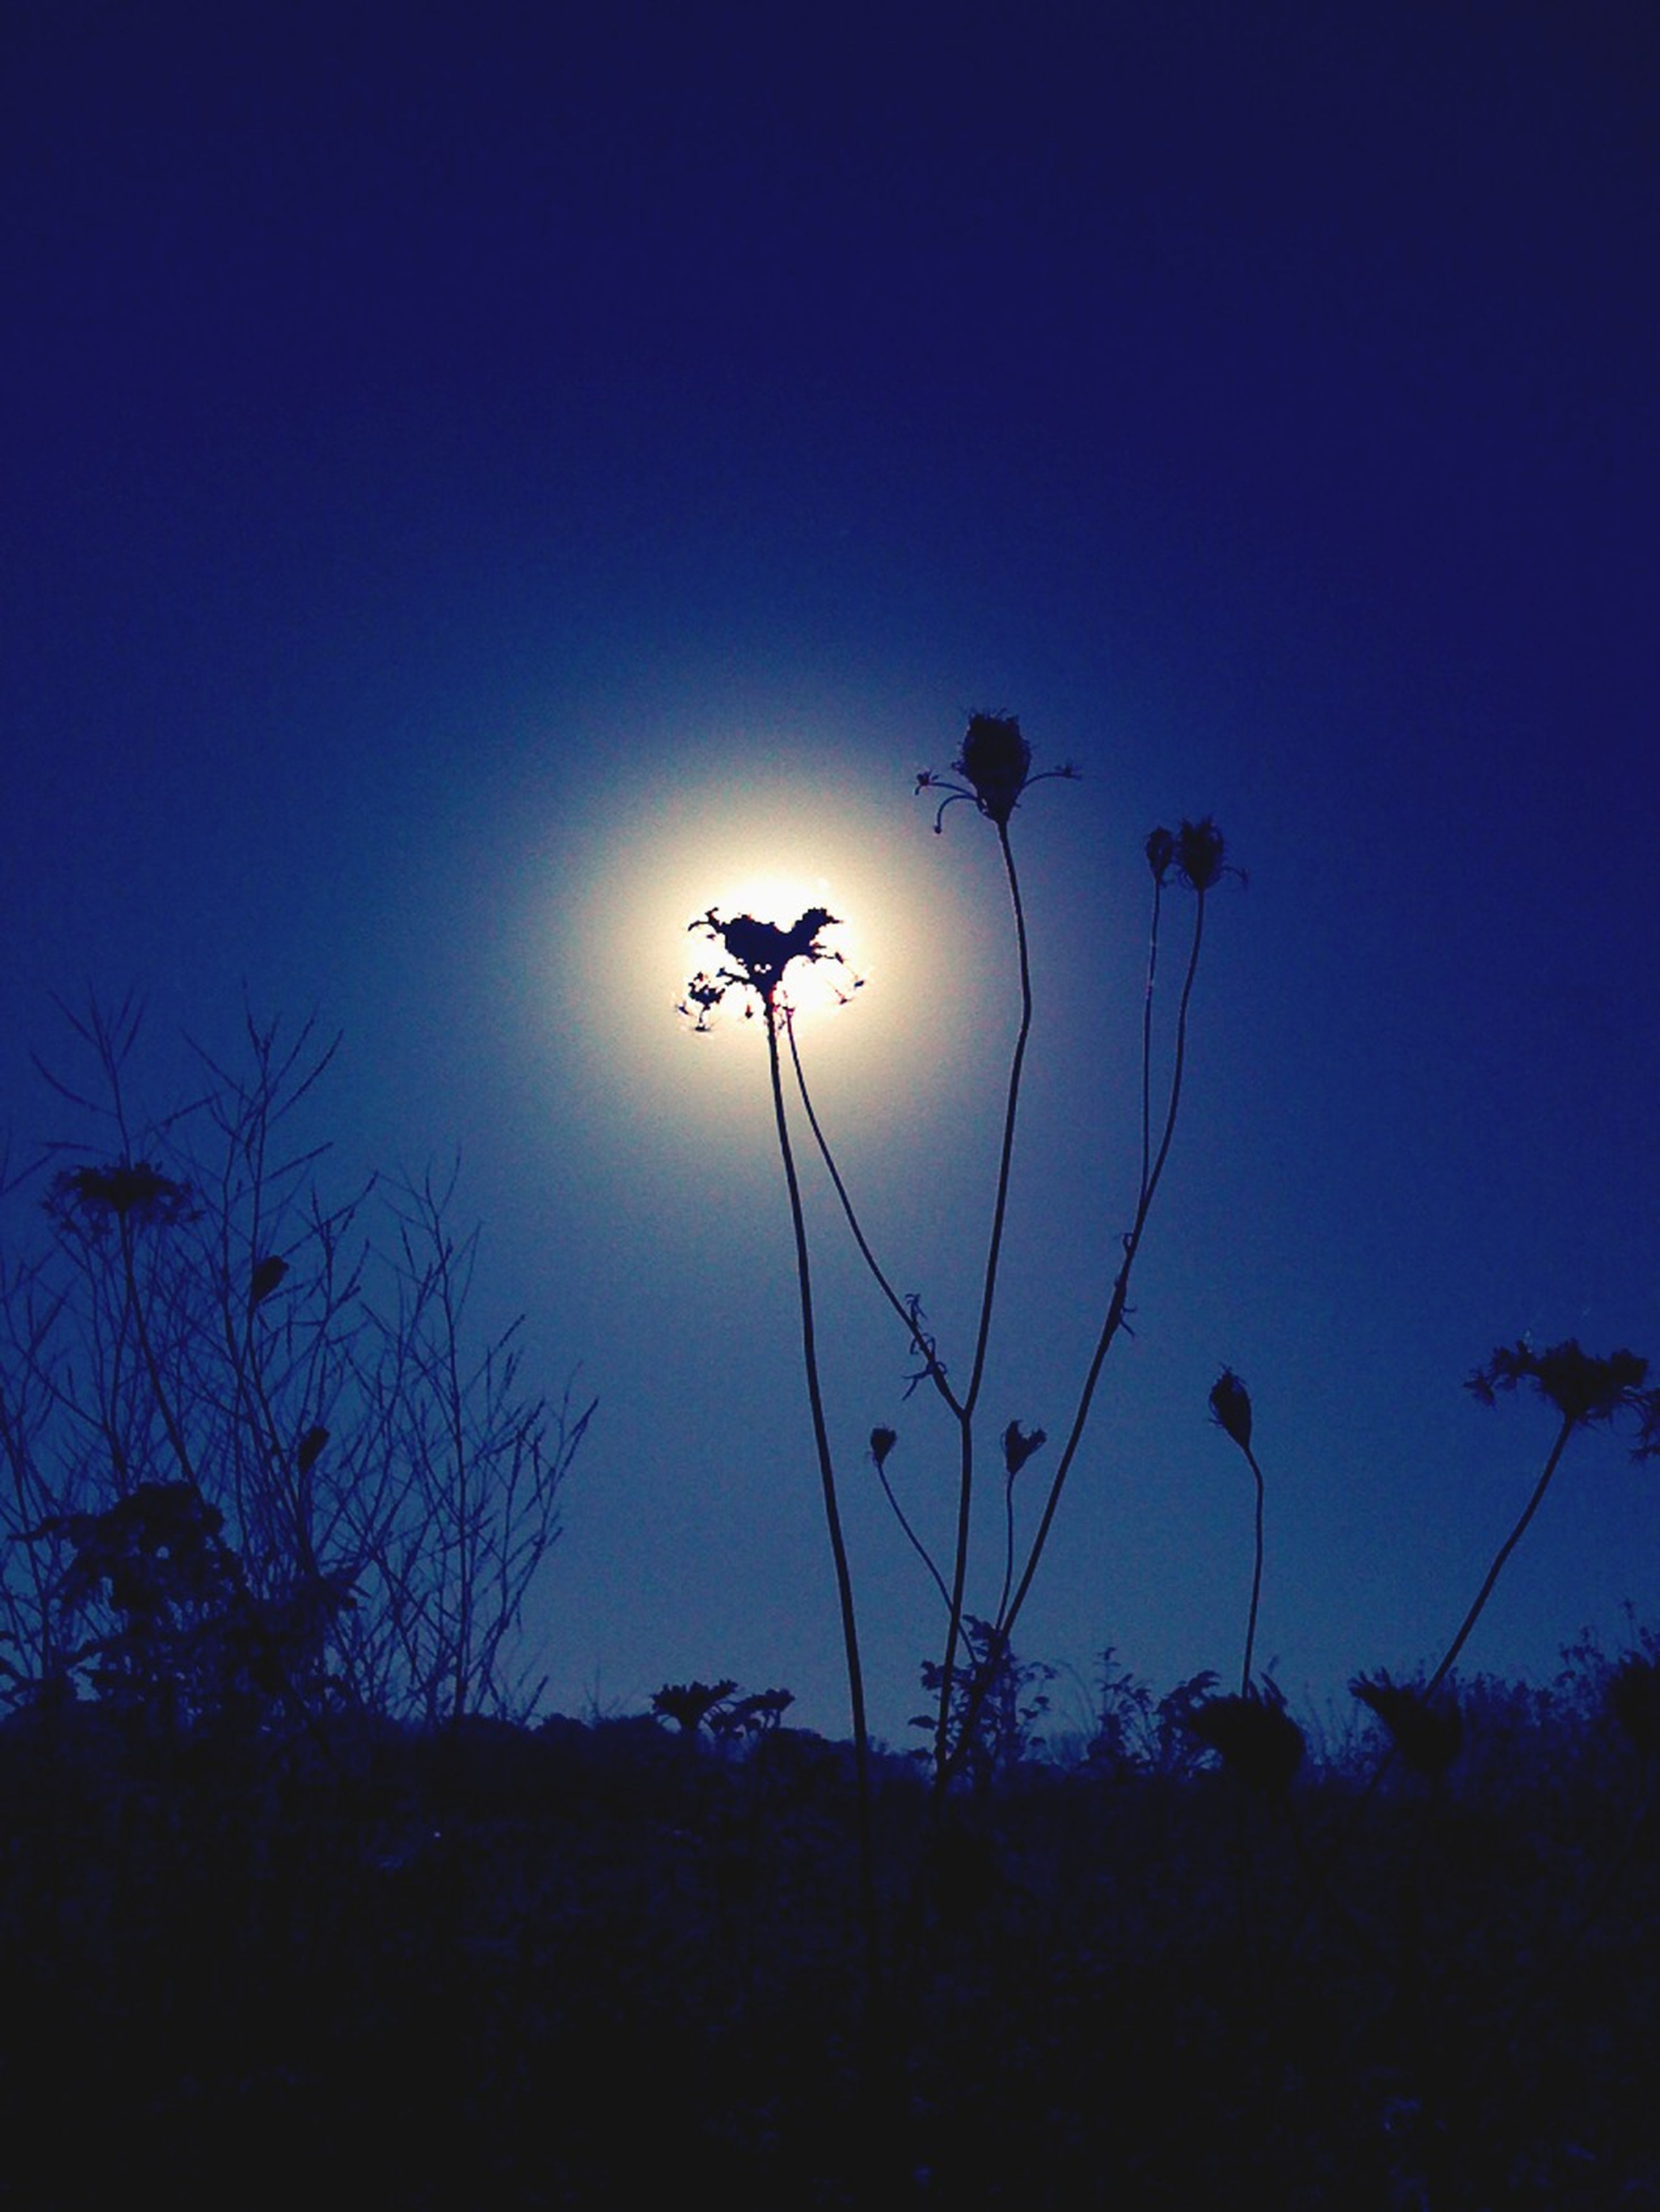 flower, growth, plant, stem, beauty in nature, nature, blue, silhouette, sky, low angle view, clear sky, sunset, fragility, tranquility, copy space, freshness, dusk, field, tranquil scene, no people